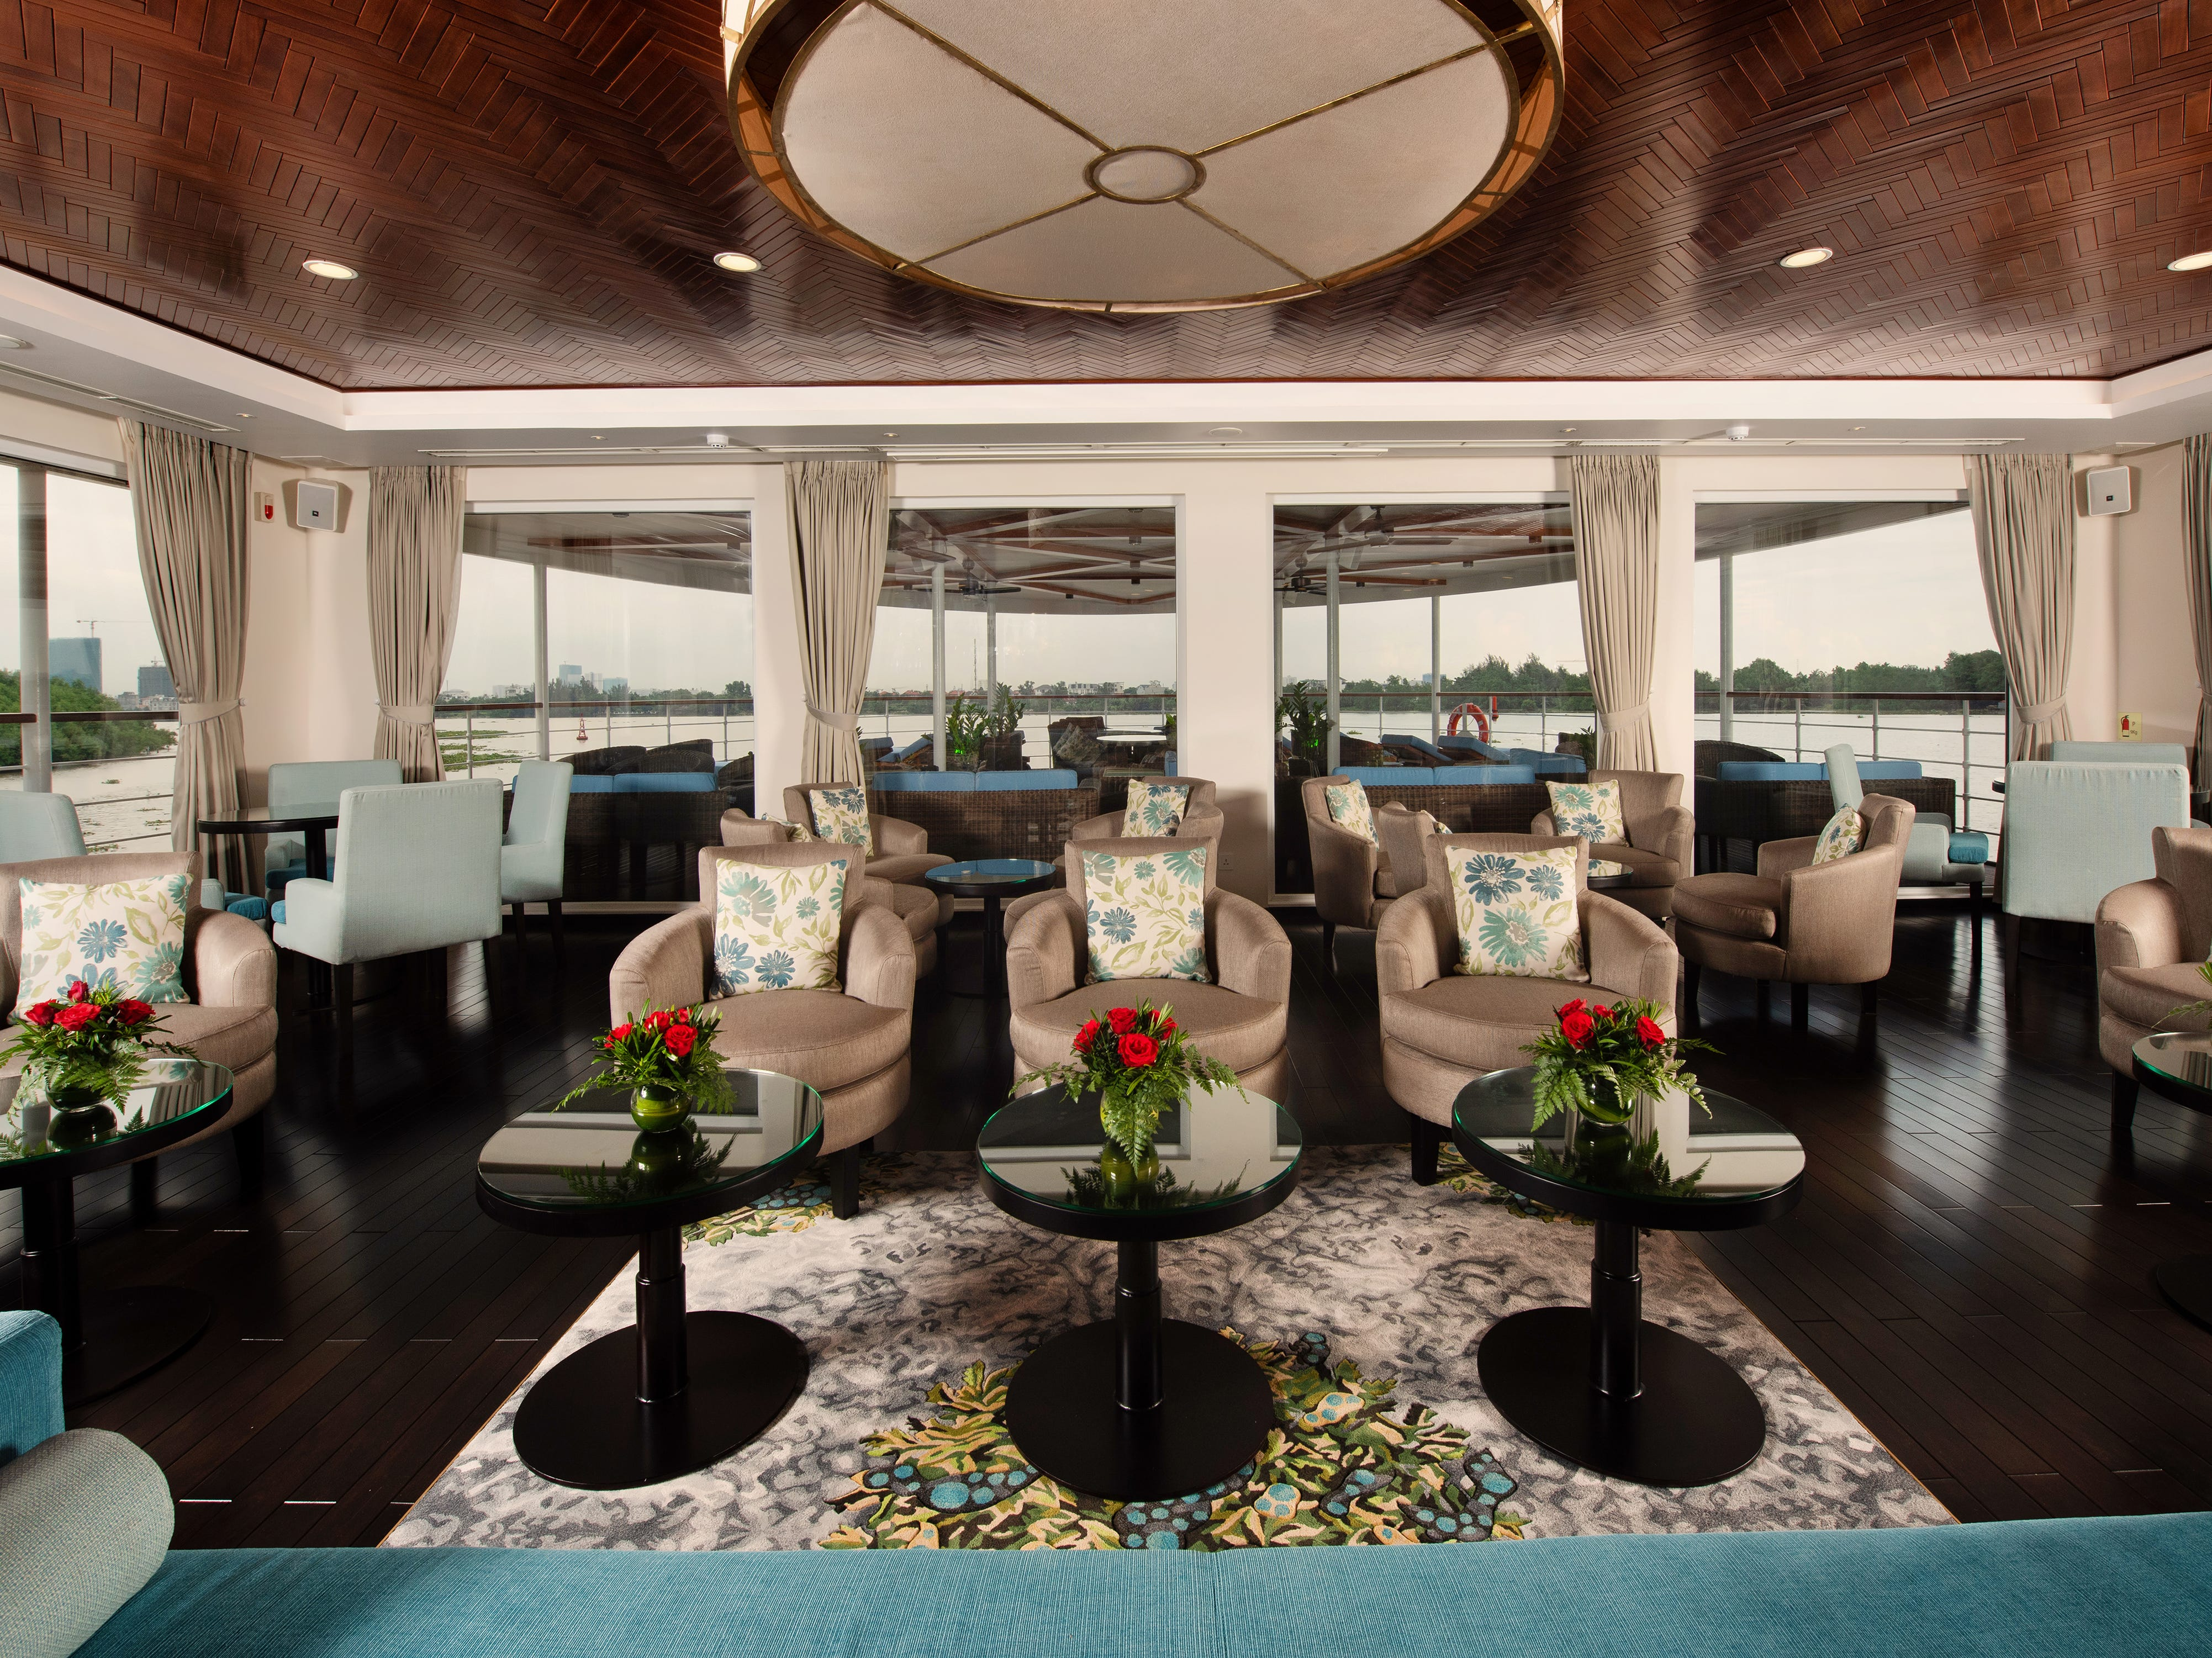 Like Avalon Waterways ships in Europe, Avalon Saigon offers expansive views from its main lounge through walls of glass.